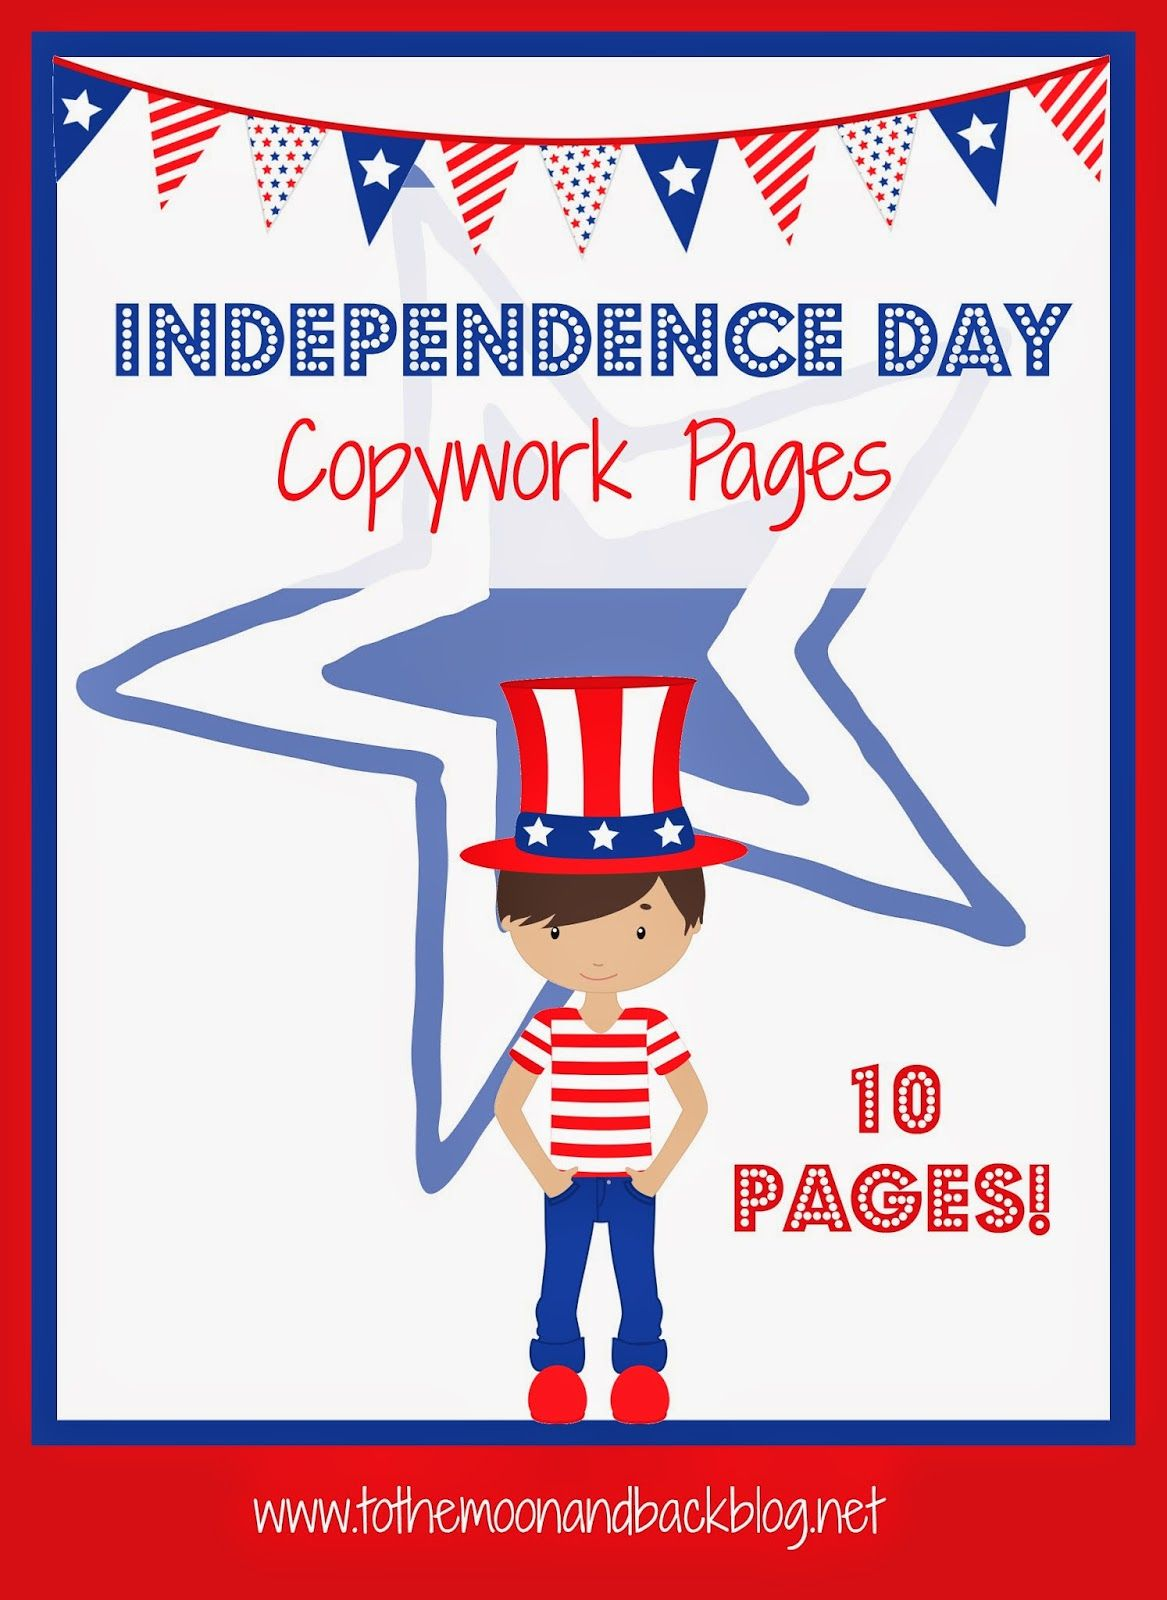 Free Independence Day Copywork Printables Copywork Printables Copywork Free Homeschool [ 1600 x 1167 Pixel ]